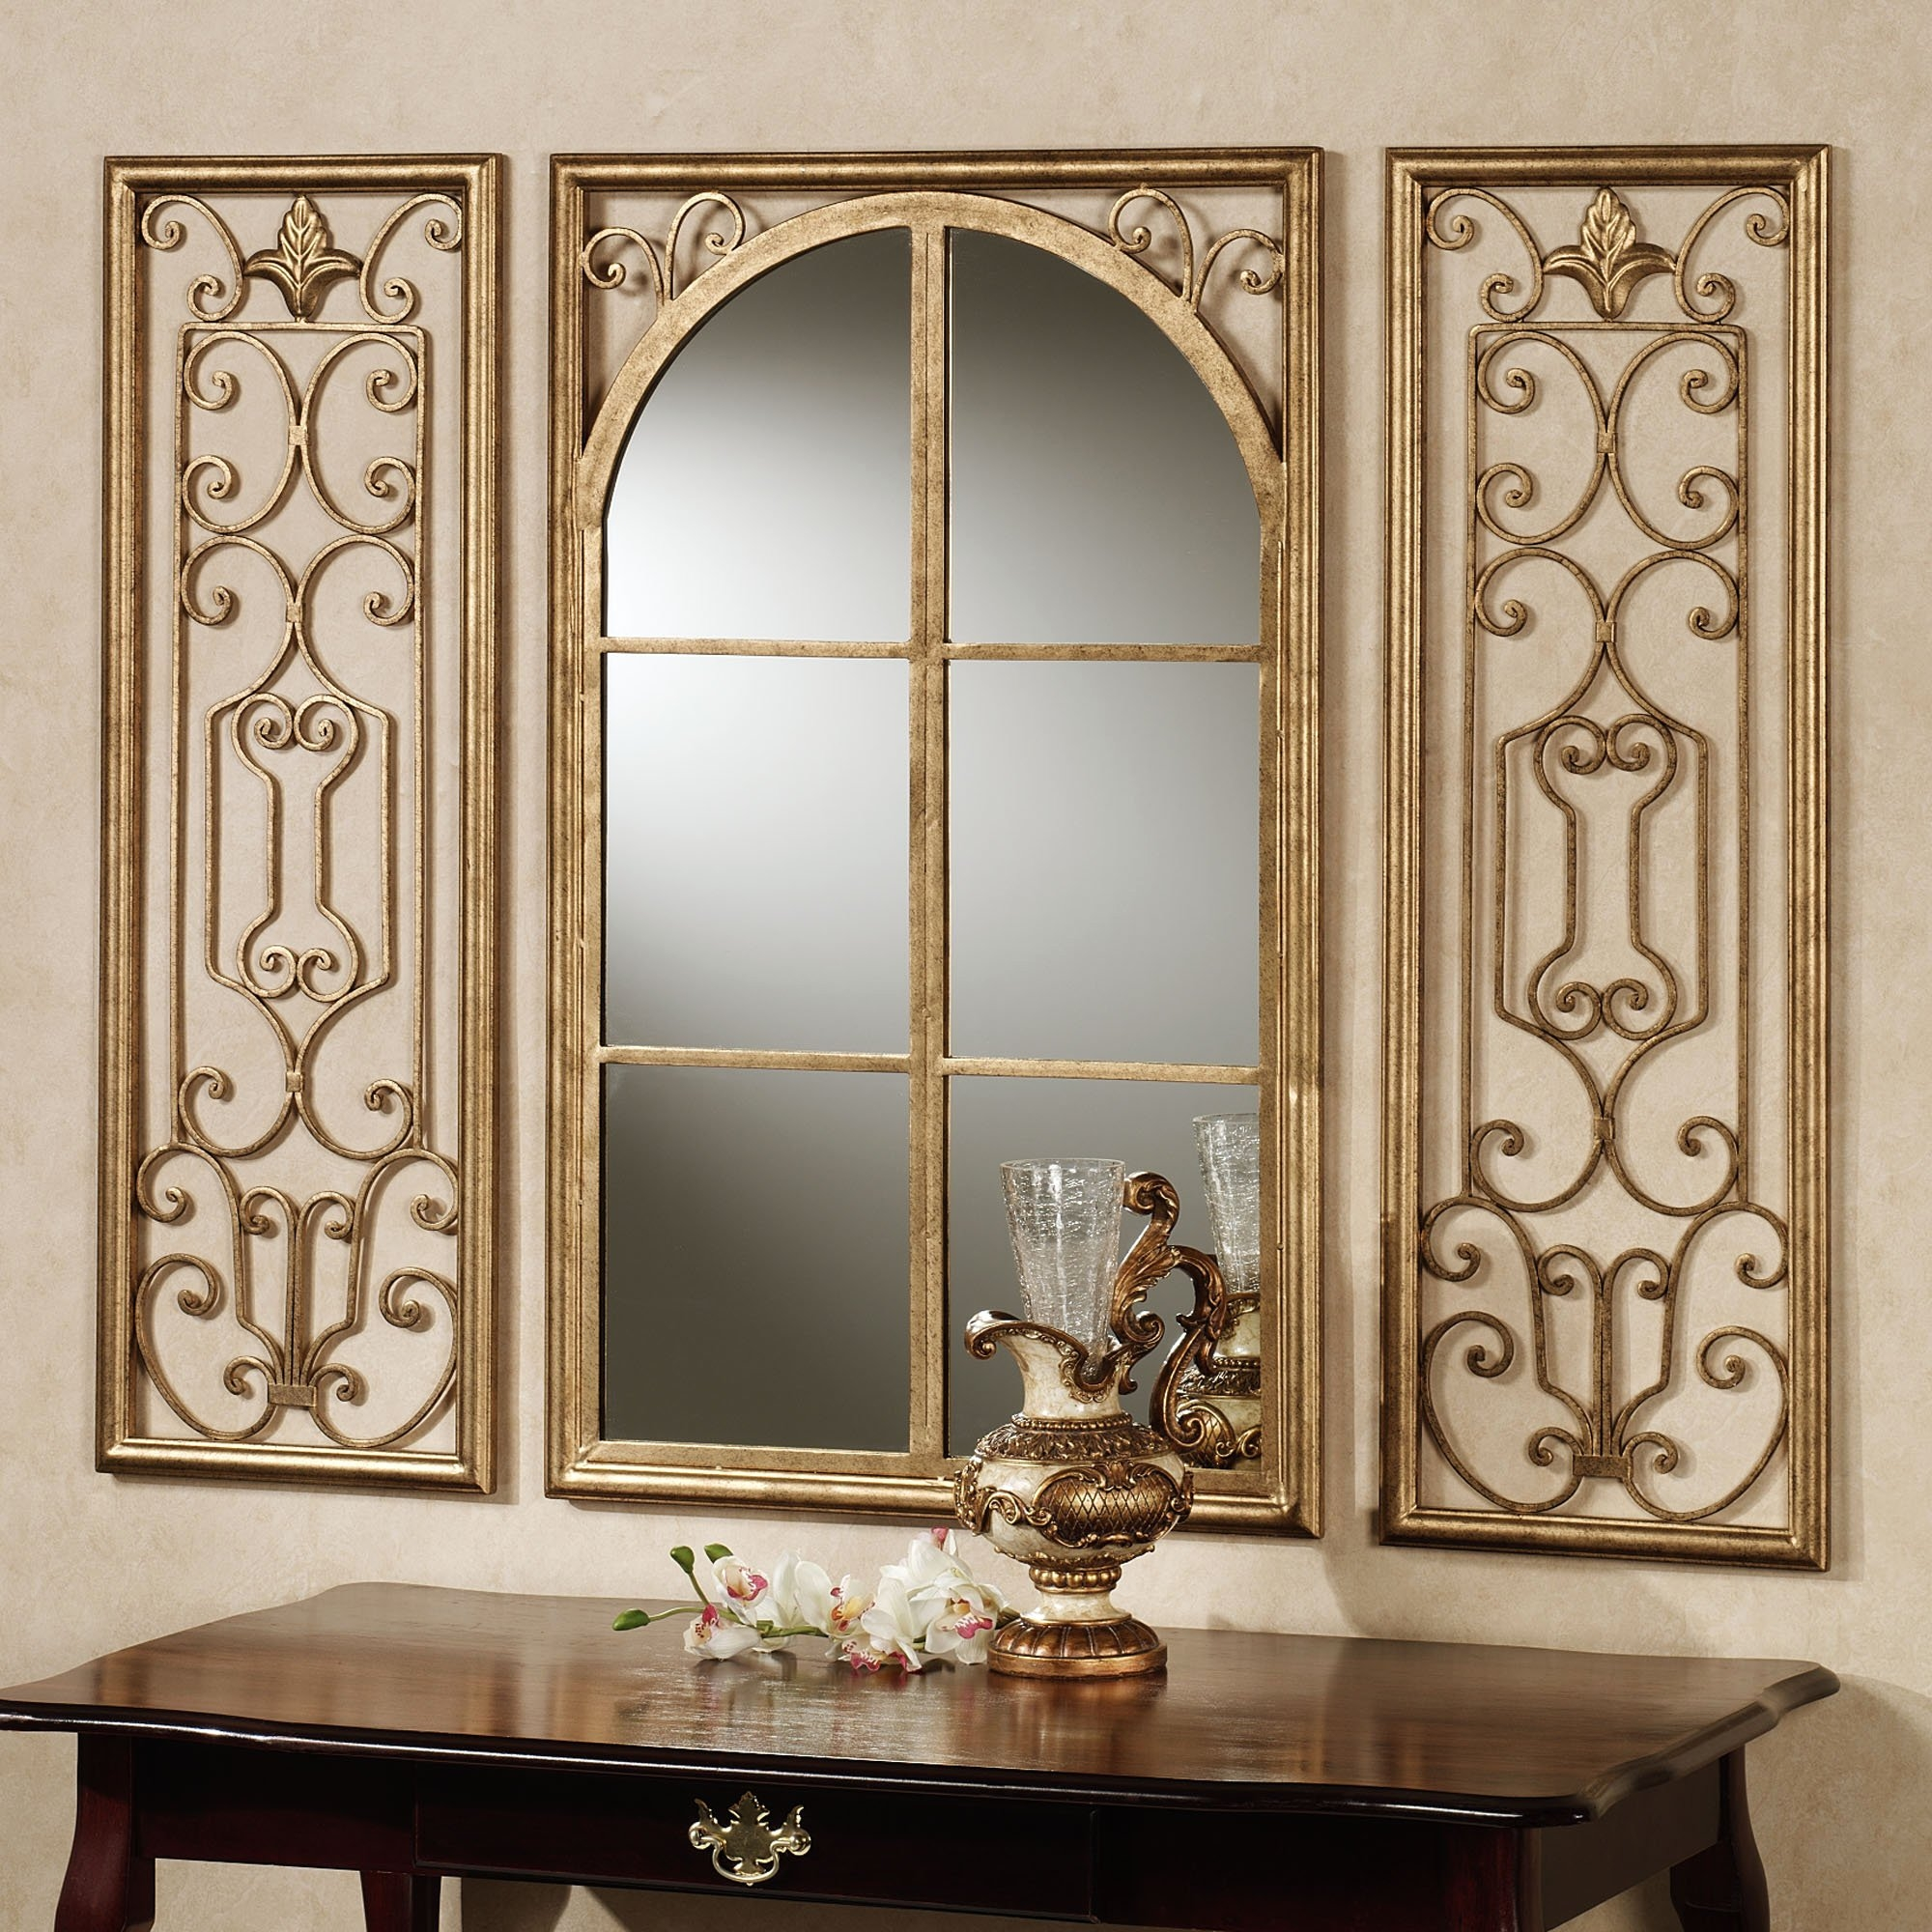 Large Wall Mirror For Living Room Decorating Mirrors New Ideas Throughout Fancy Sale